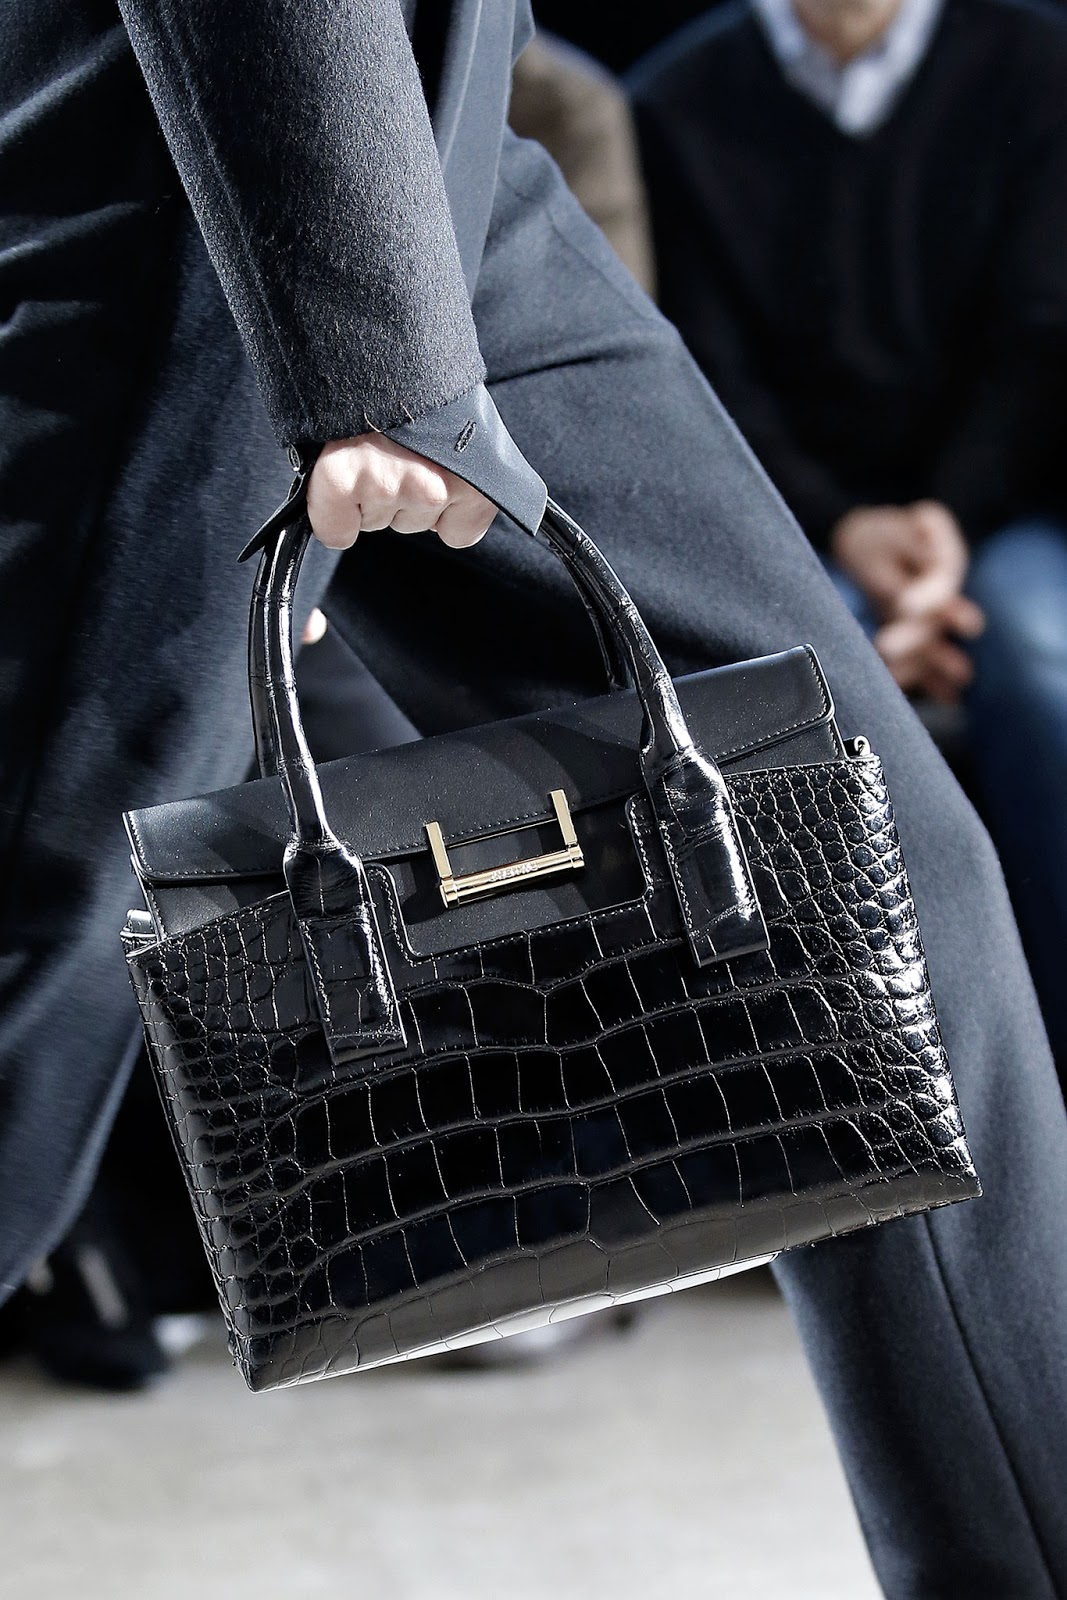 Fall 2015 accessories trend report / best bags / investment bags / crocodile accessories trend at Jason Wu Fall/Winter 2015 via fashionedbylove.co.uk, british fashion blog